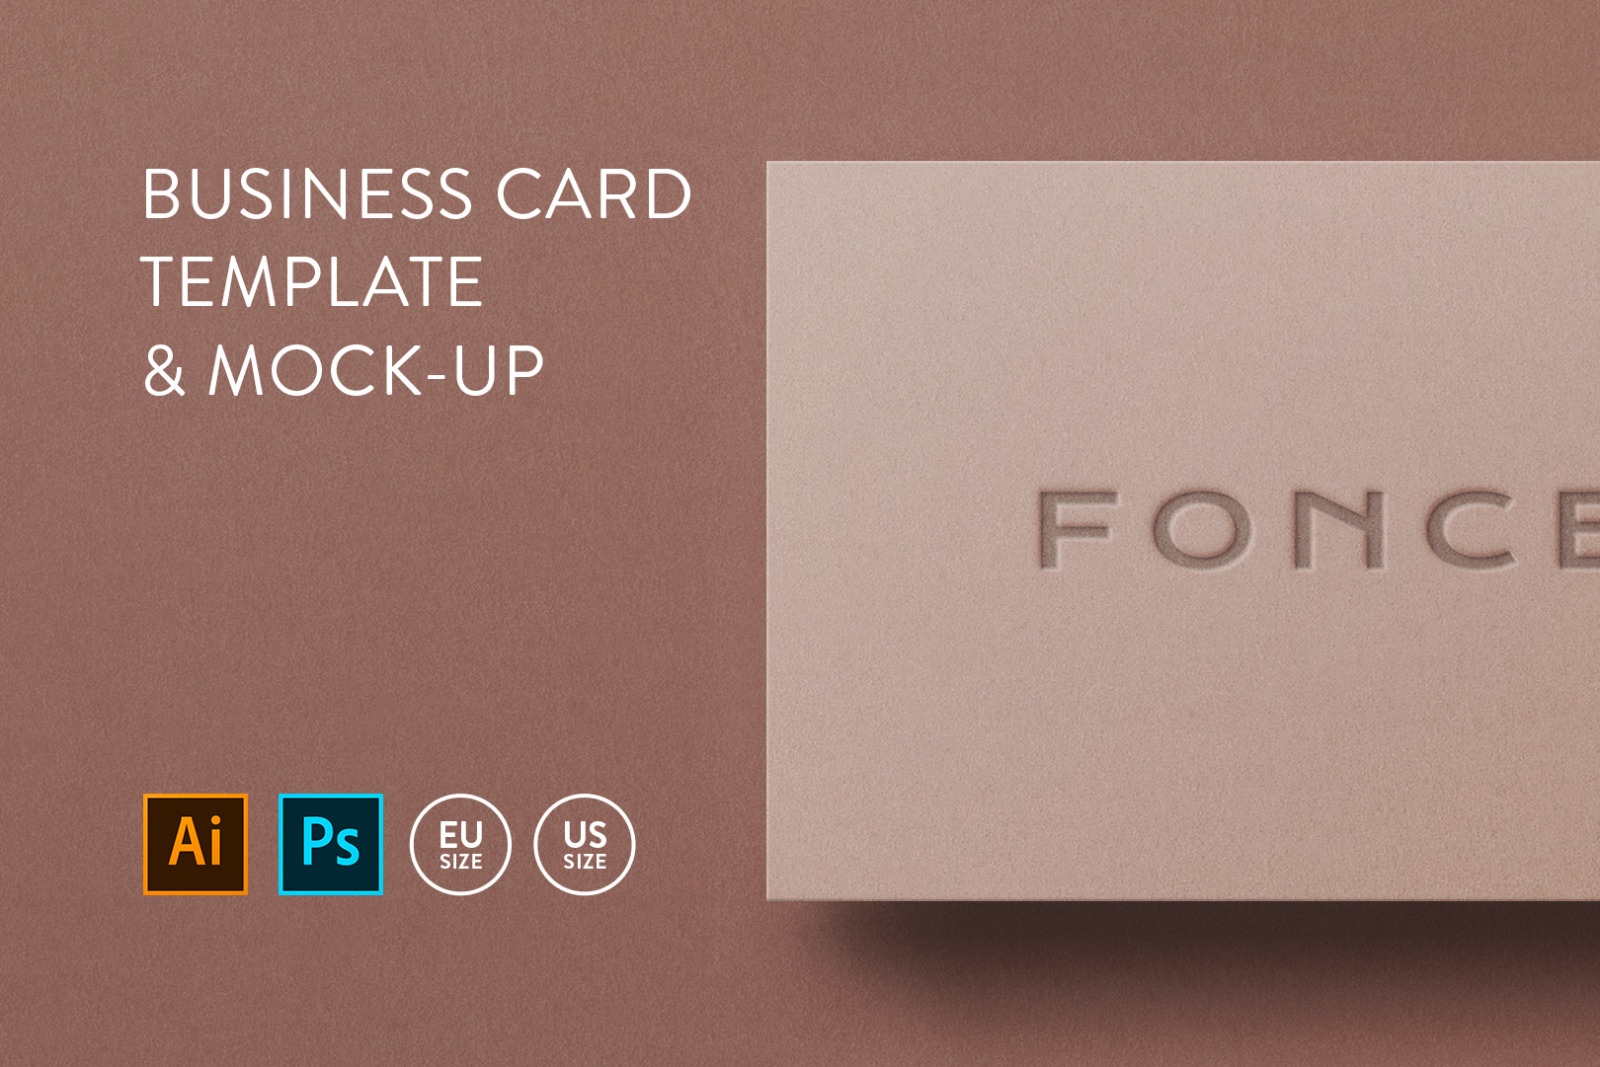 Business card Template & Mock-up #43